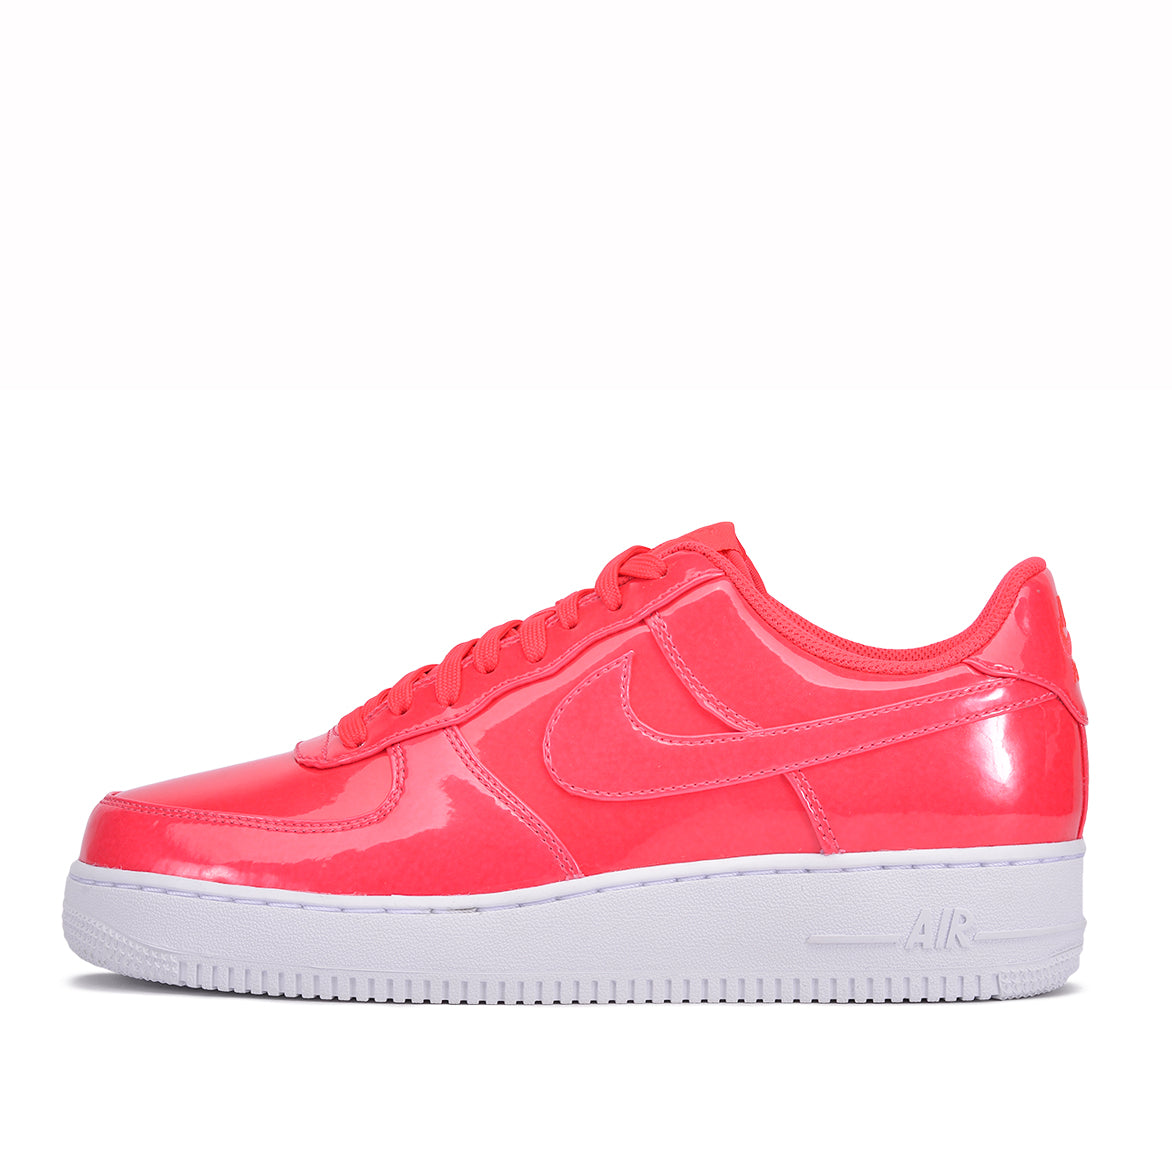 huge selection of d9869 c0906 AIR FORCE 1 `07 LV8 UV - SIREN RED   City Blue